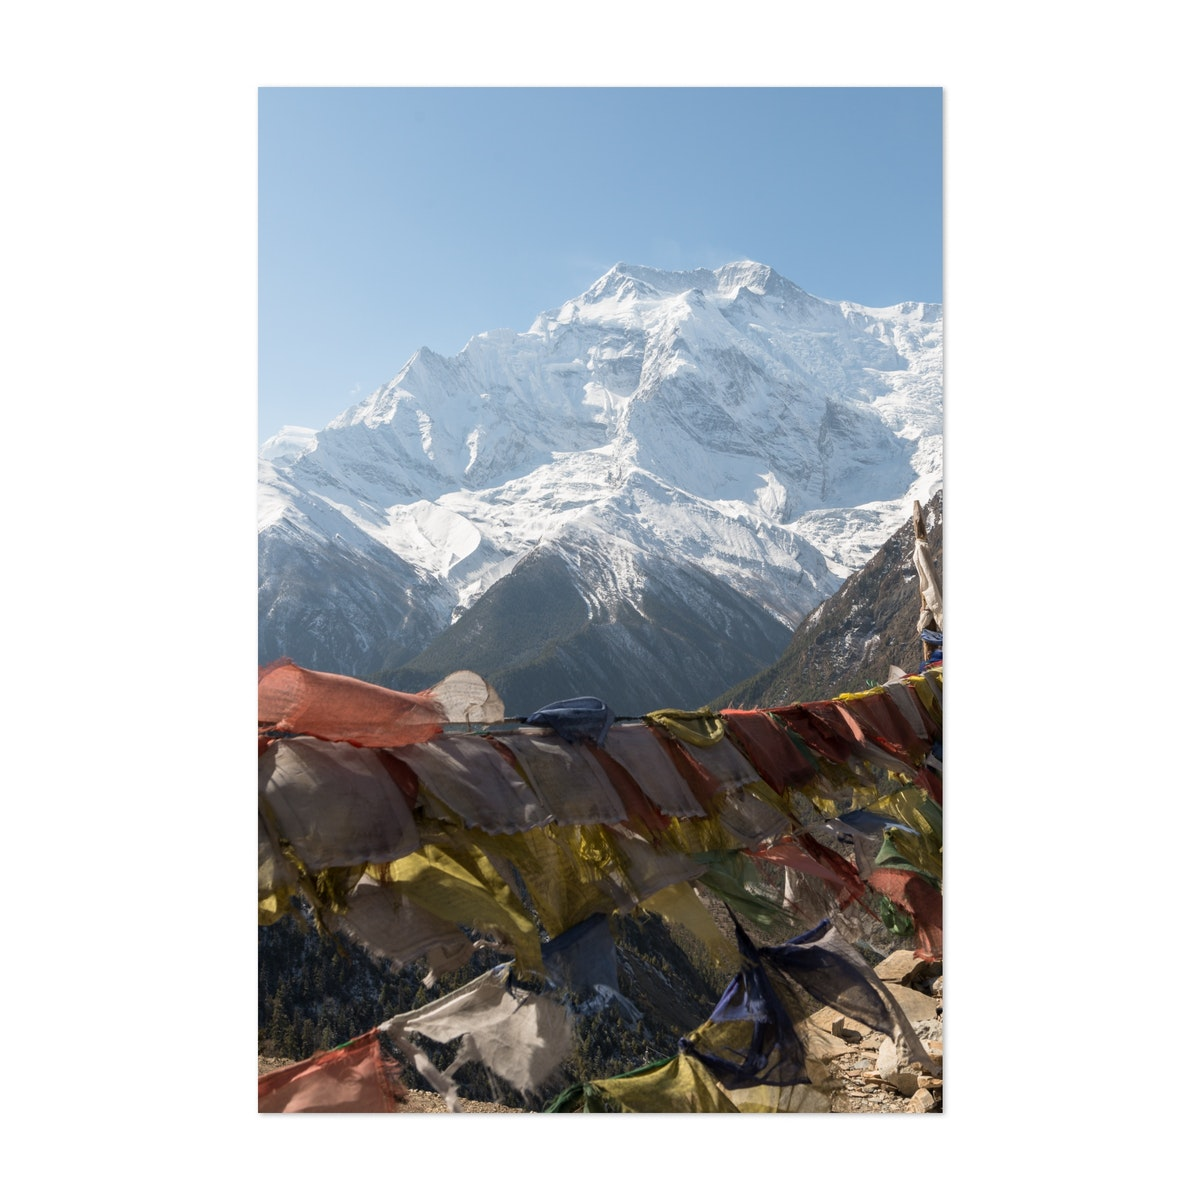 Prayer Flags and the Mountain Face